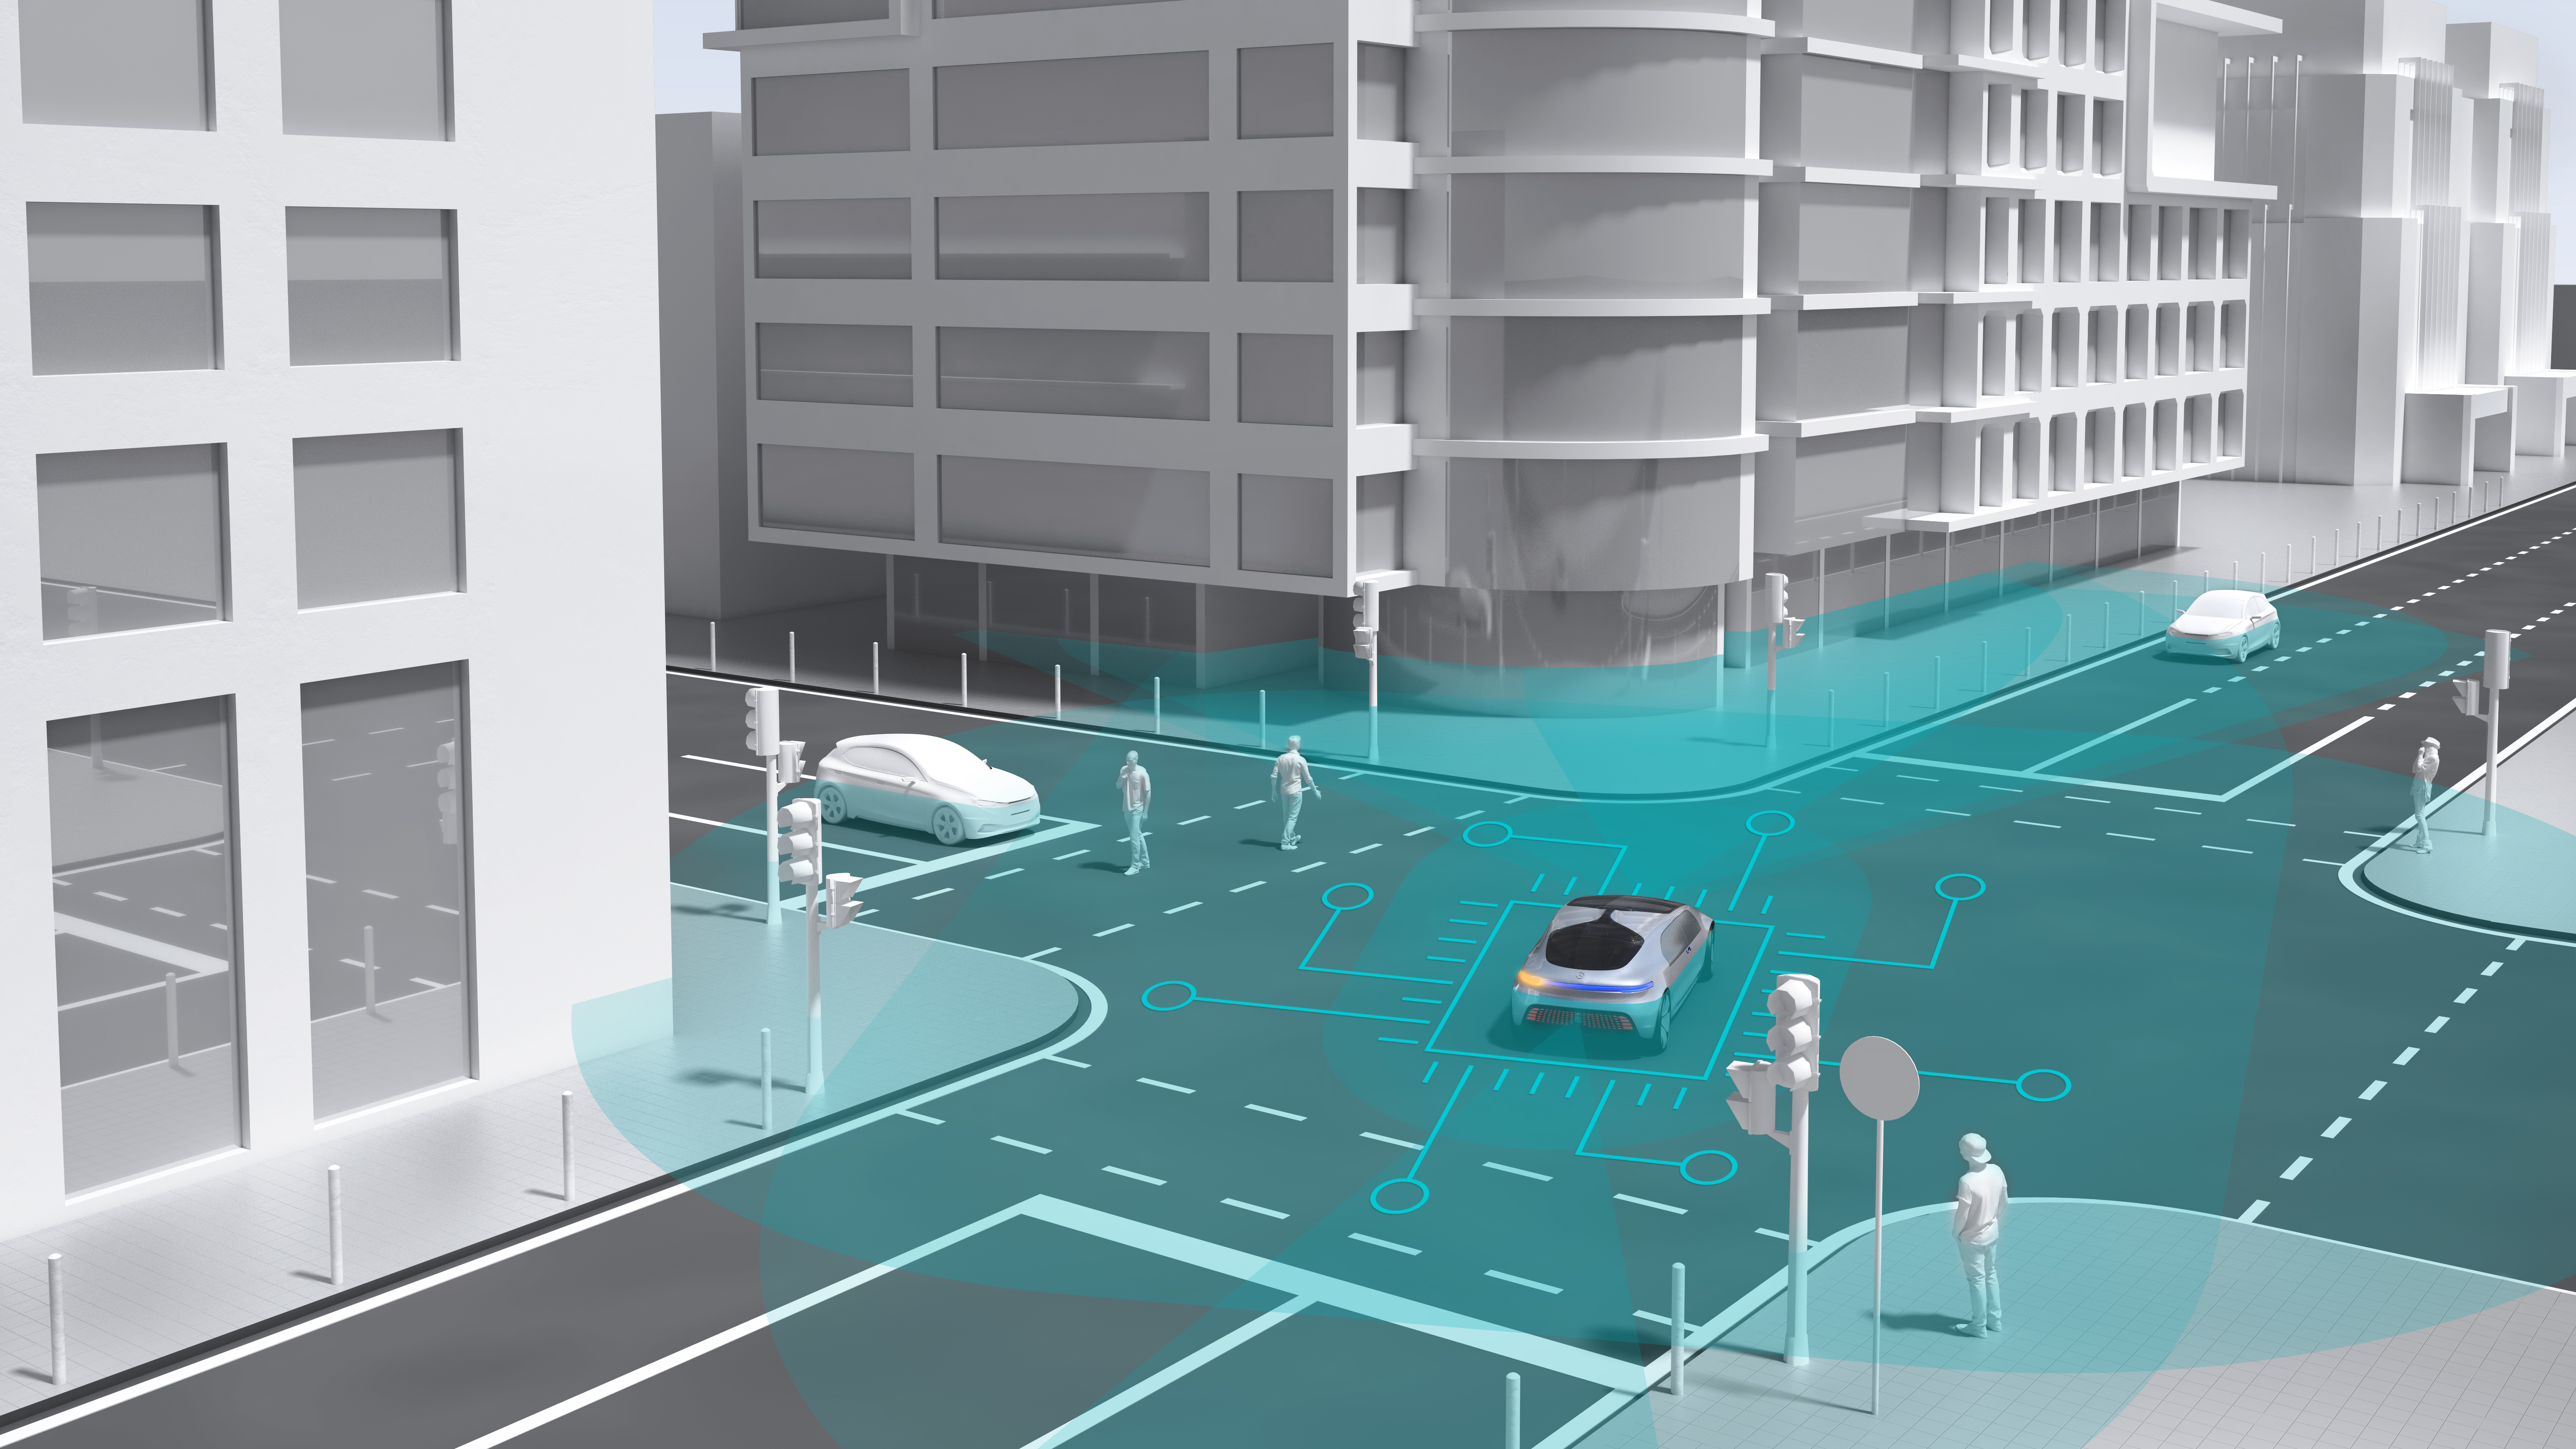 One field of application of artificial intelligence (AI) is automated driving. It is hoped that the use of AI will reduce the number of accidents.